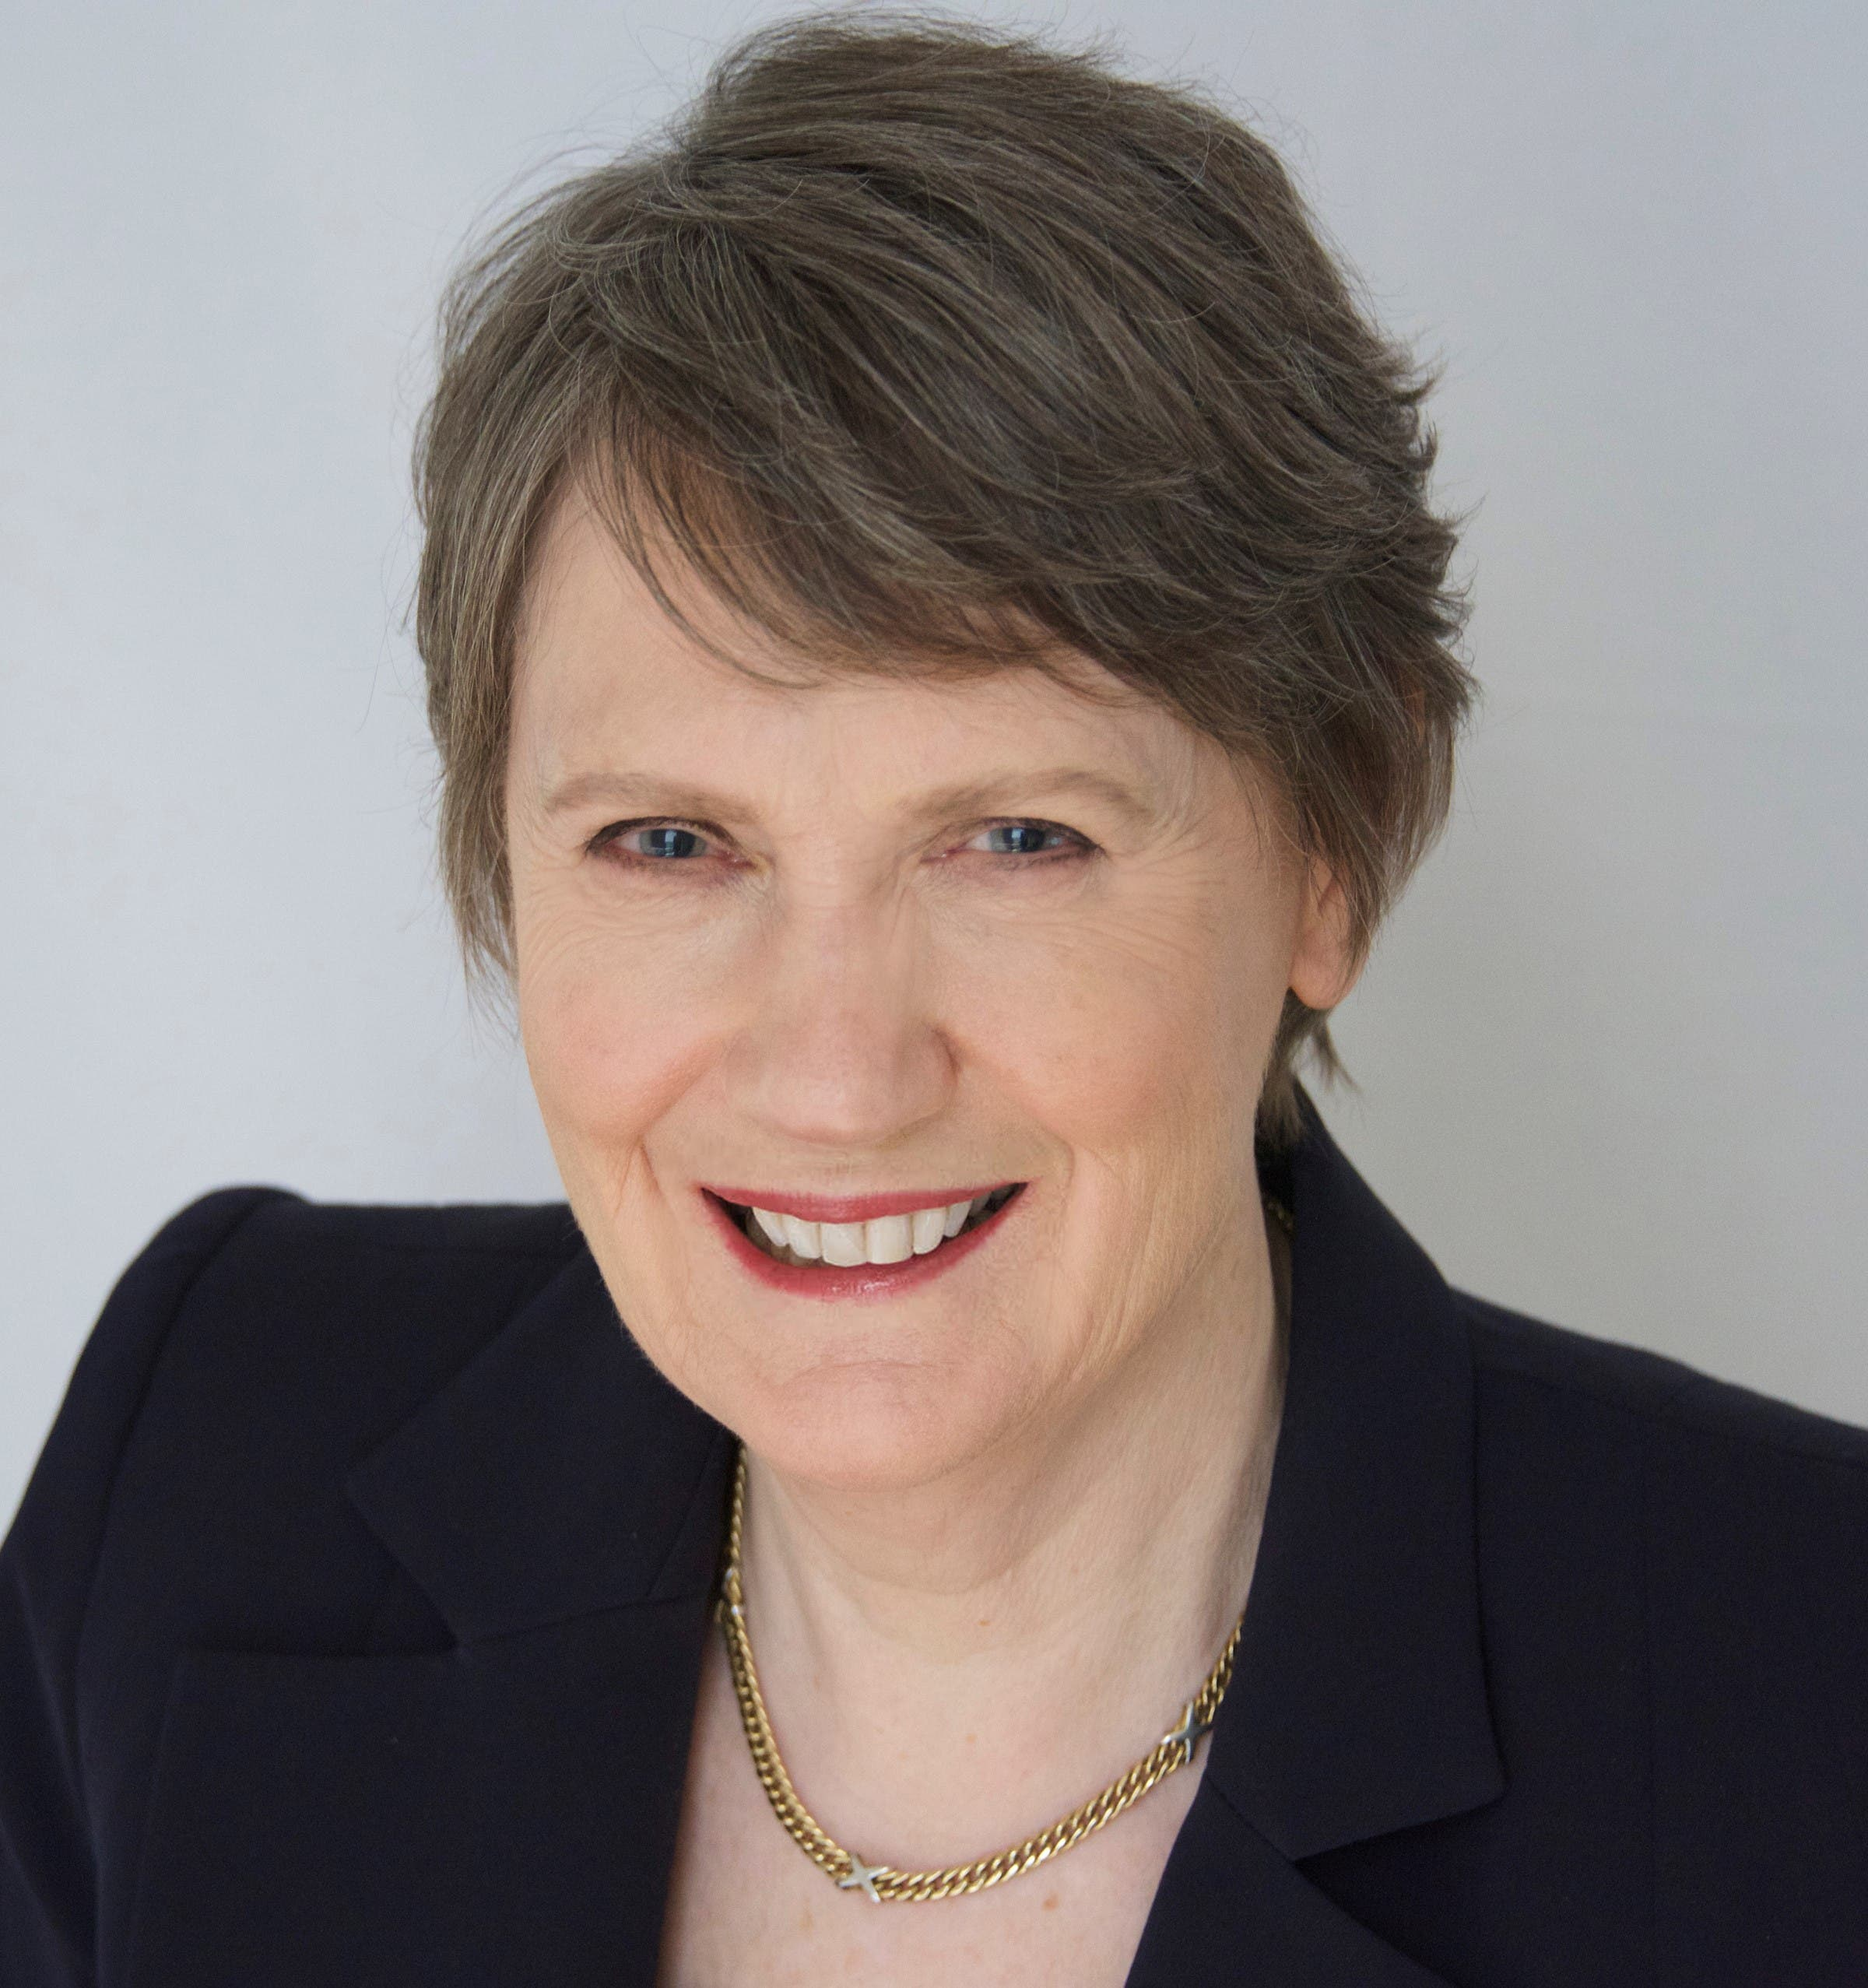 Helen Clark, former PM of New Zealand, official photo (Supplied)